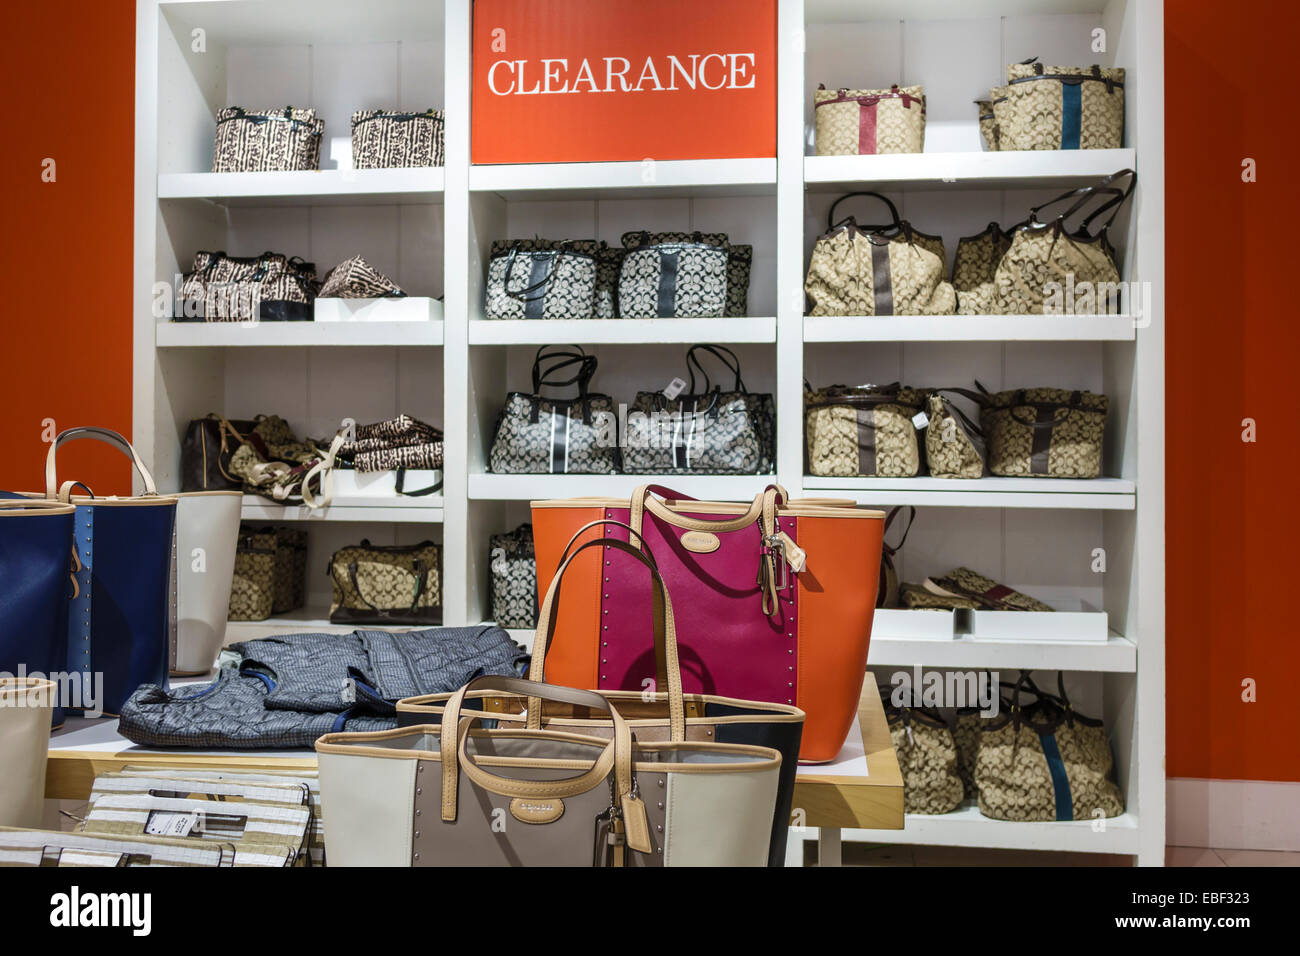 bd85e6621a Orlando Florida Premium Outlets shopping Coach Factory leather goods  display sale women s handbags inside clearance promotion